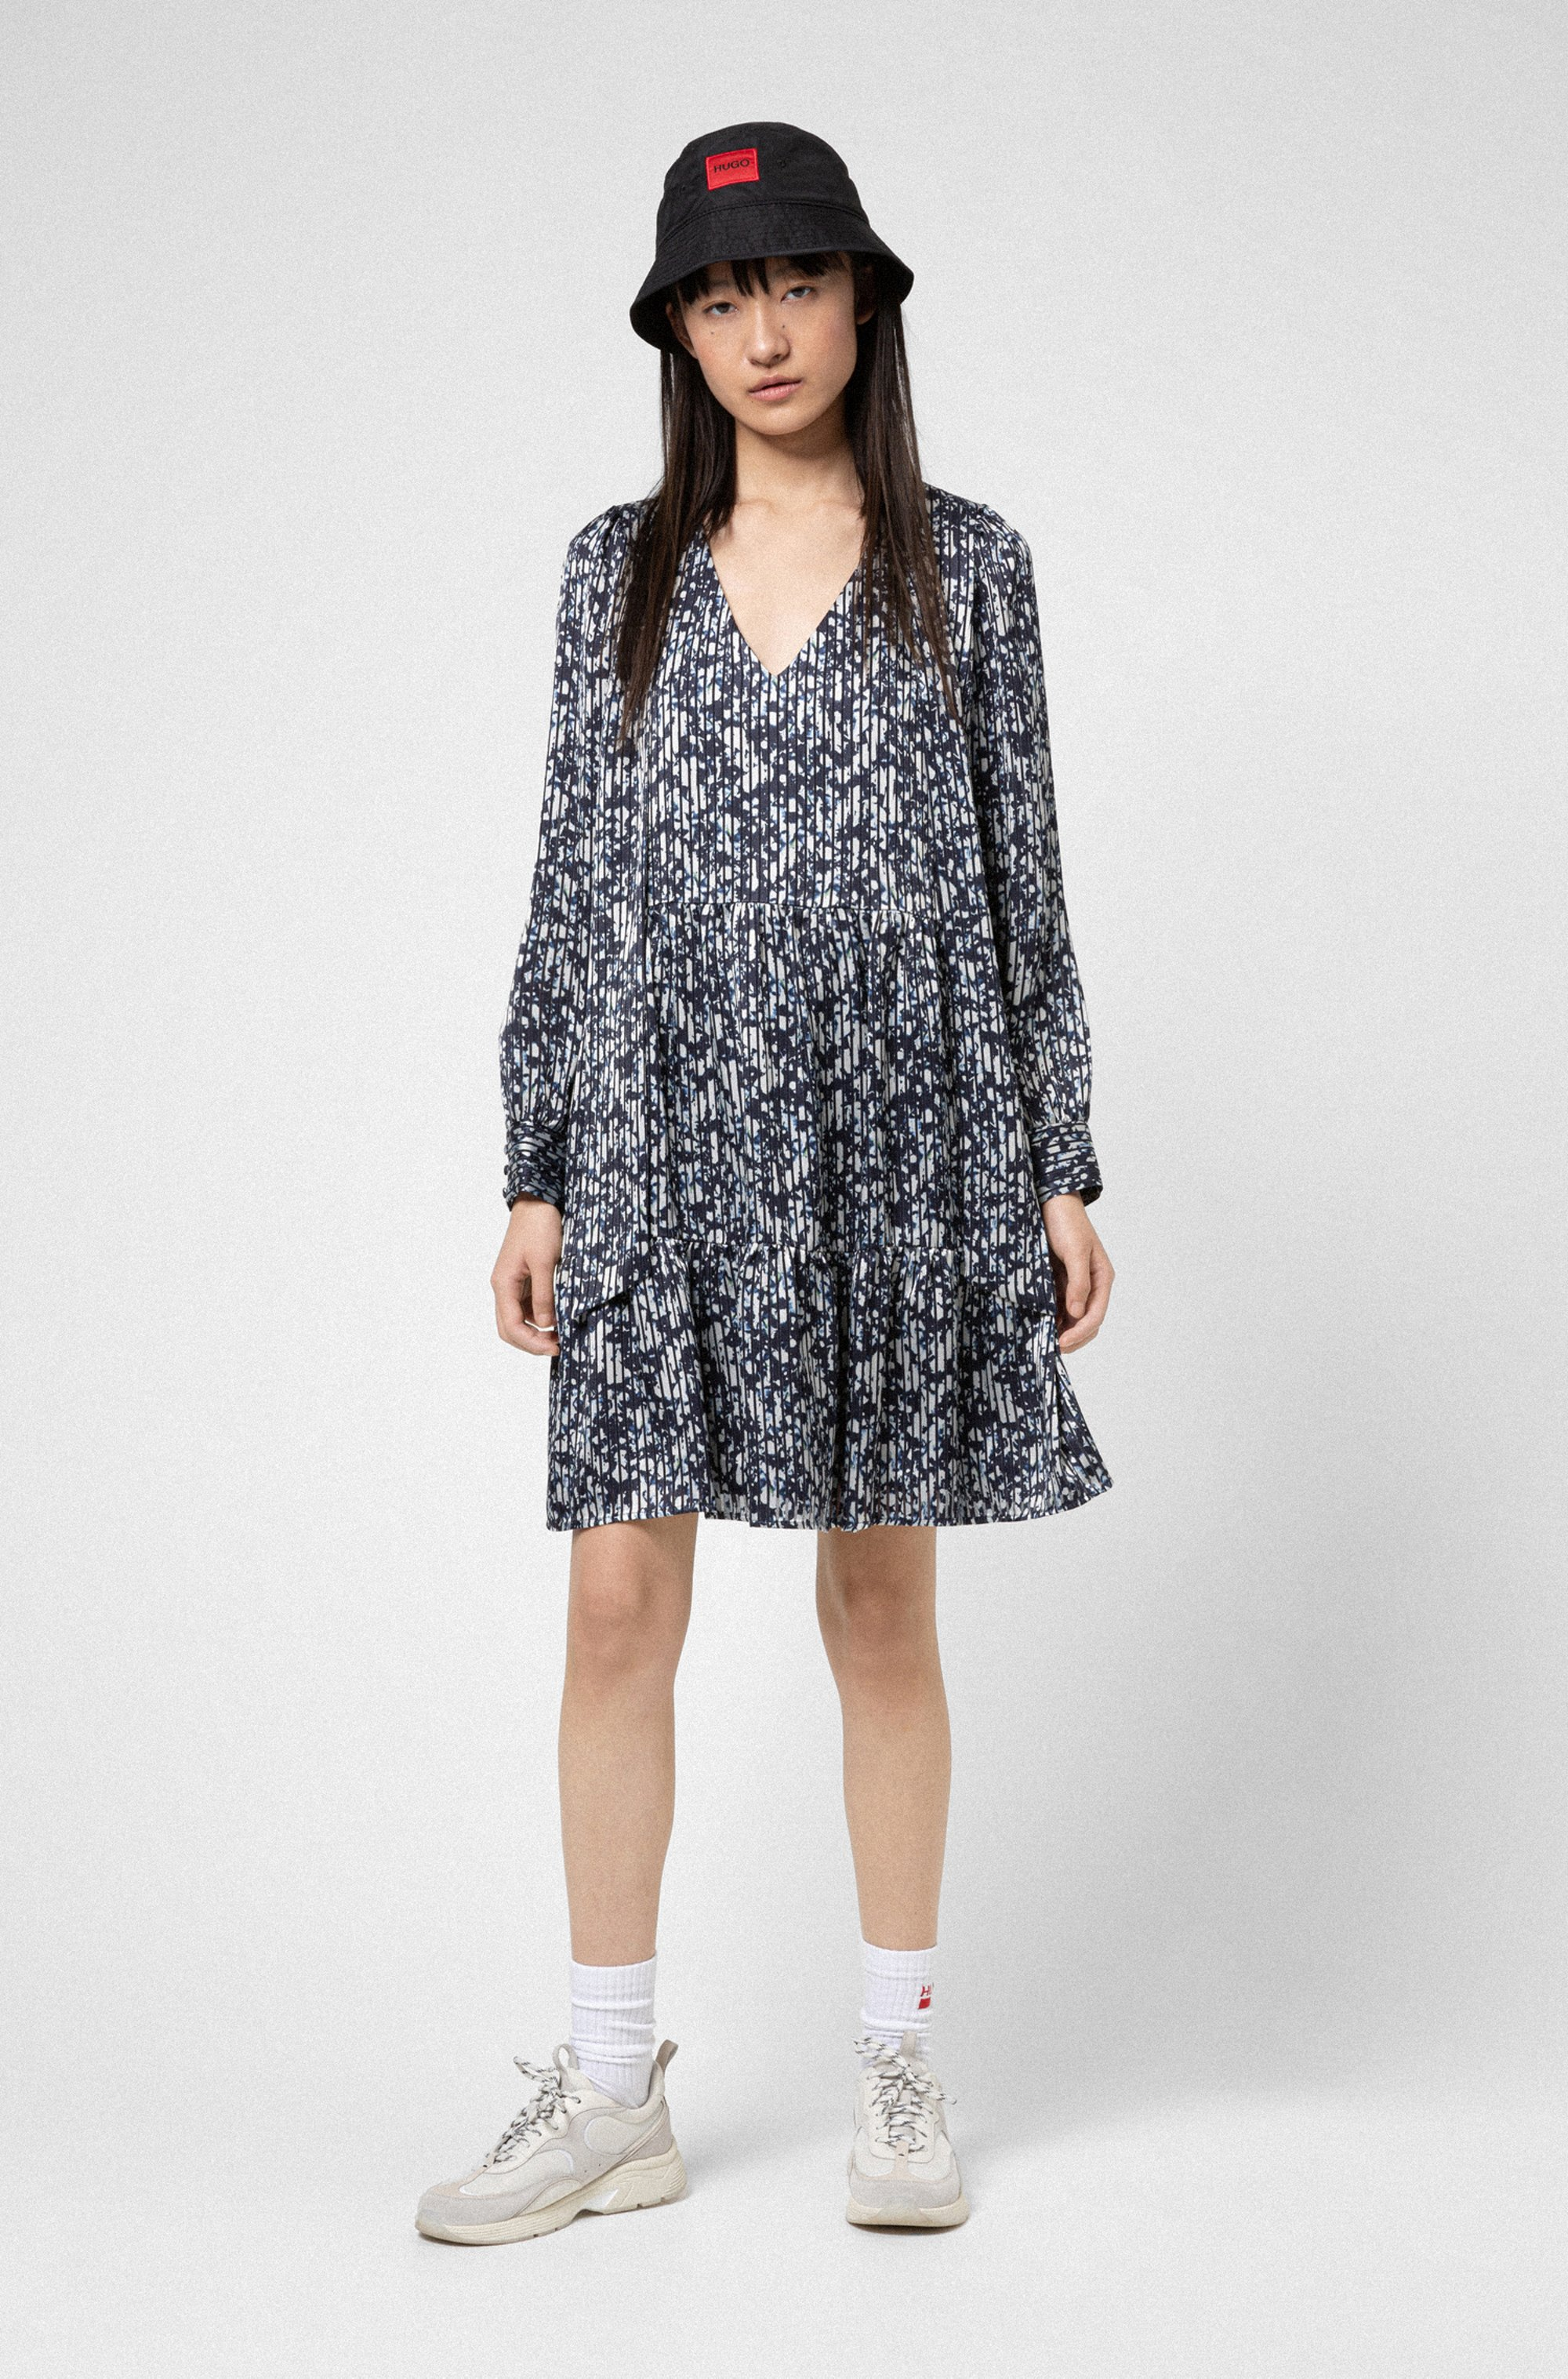 Tie-neck dress in fluid fabric with brushstroke print